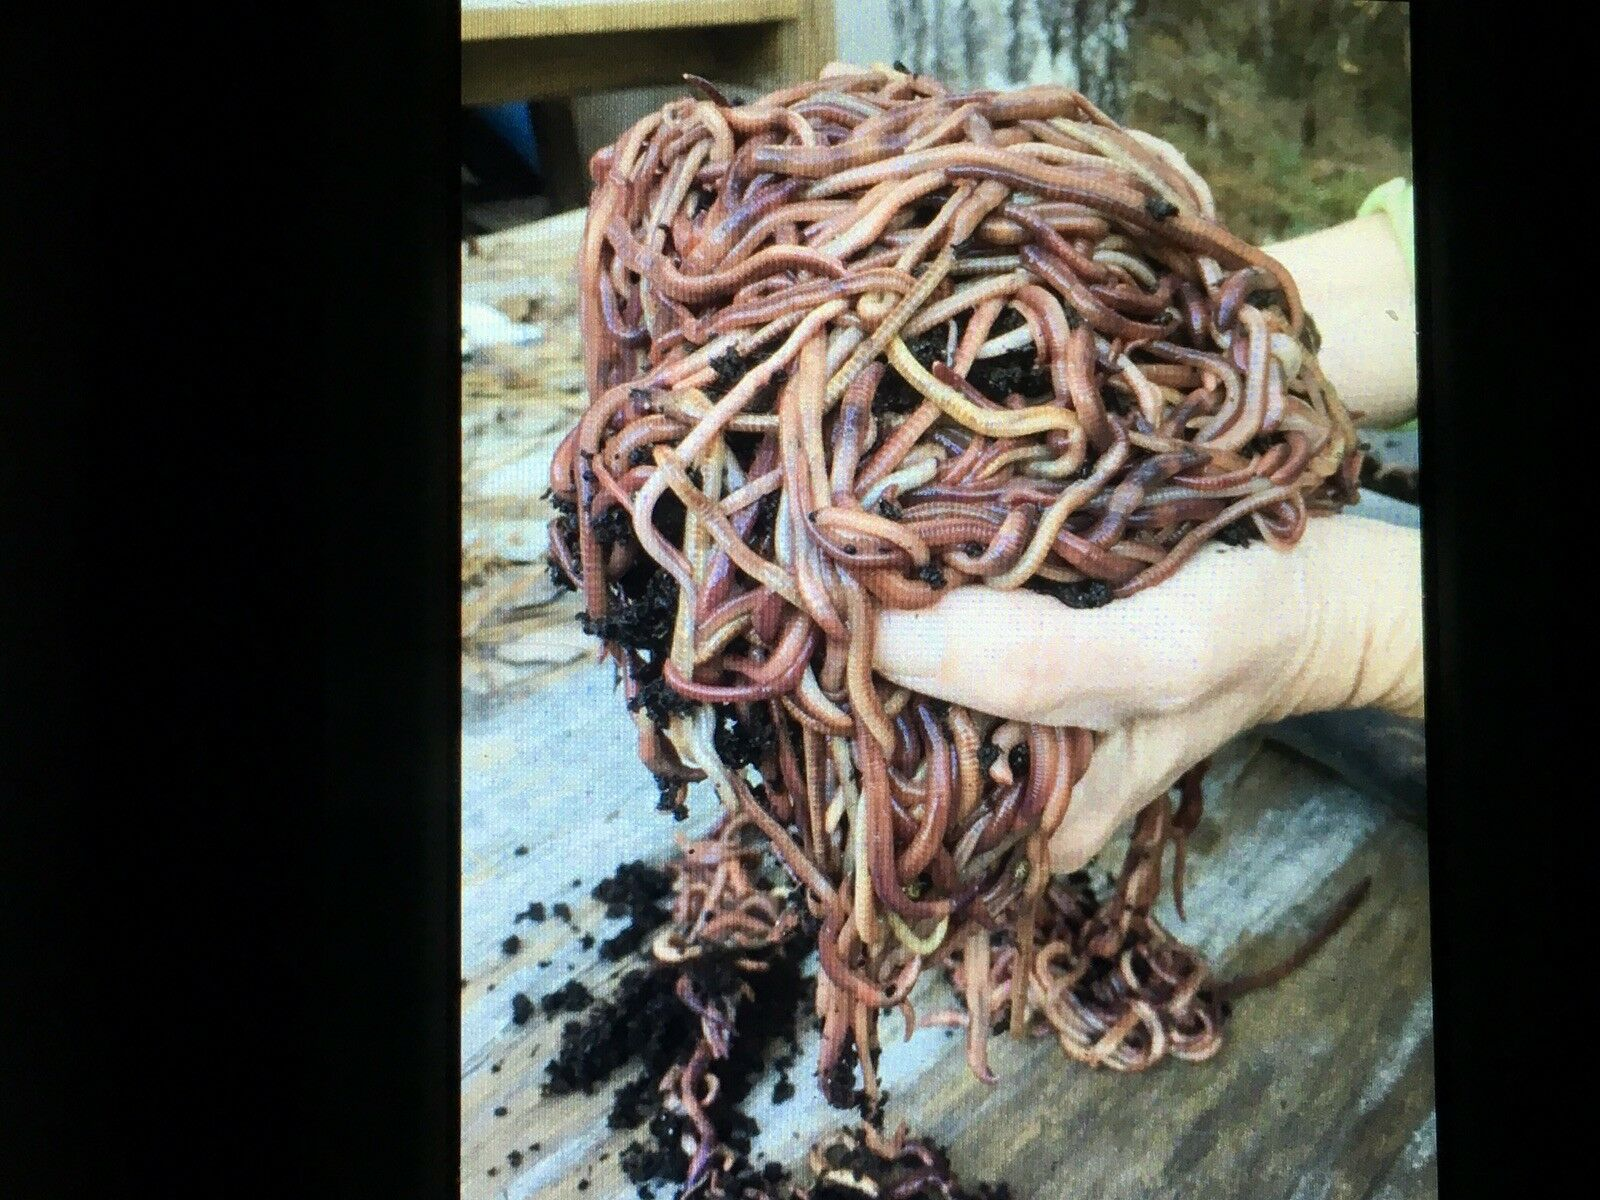 Live Fish Bait; 2 pounds Red Wiggler Worms (approximately 2,000 worms)